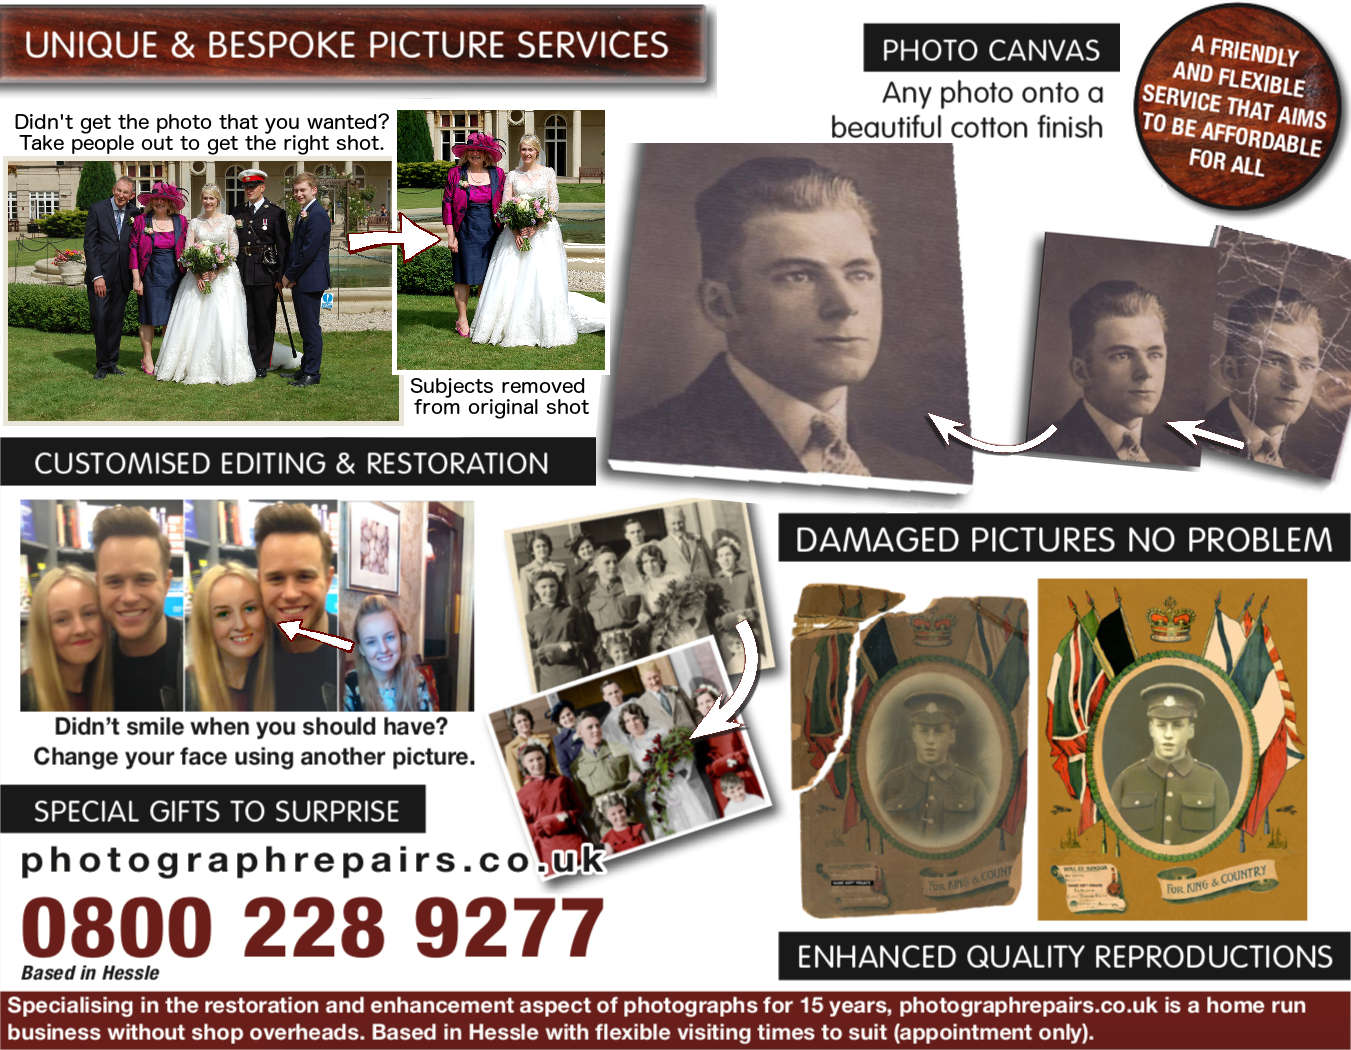 Unique and bespoke picture service examples showing restoration and enlargement of a small crinkled photo onto a canvas, photo face change and retouching, a hand coloured black and white photograph, and large old picture restoration.